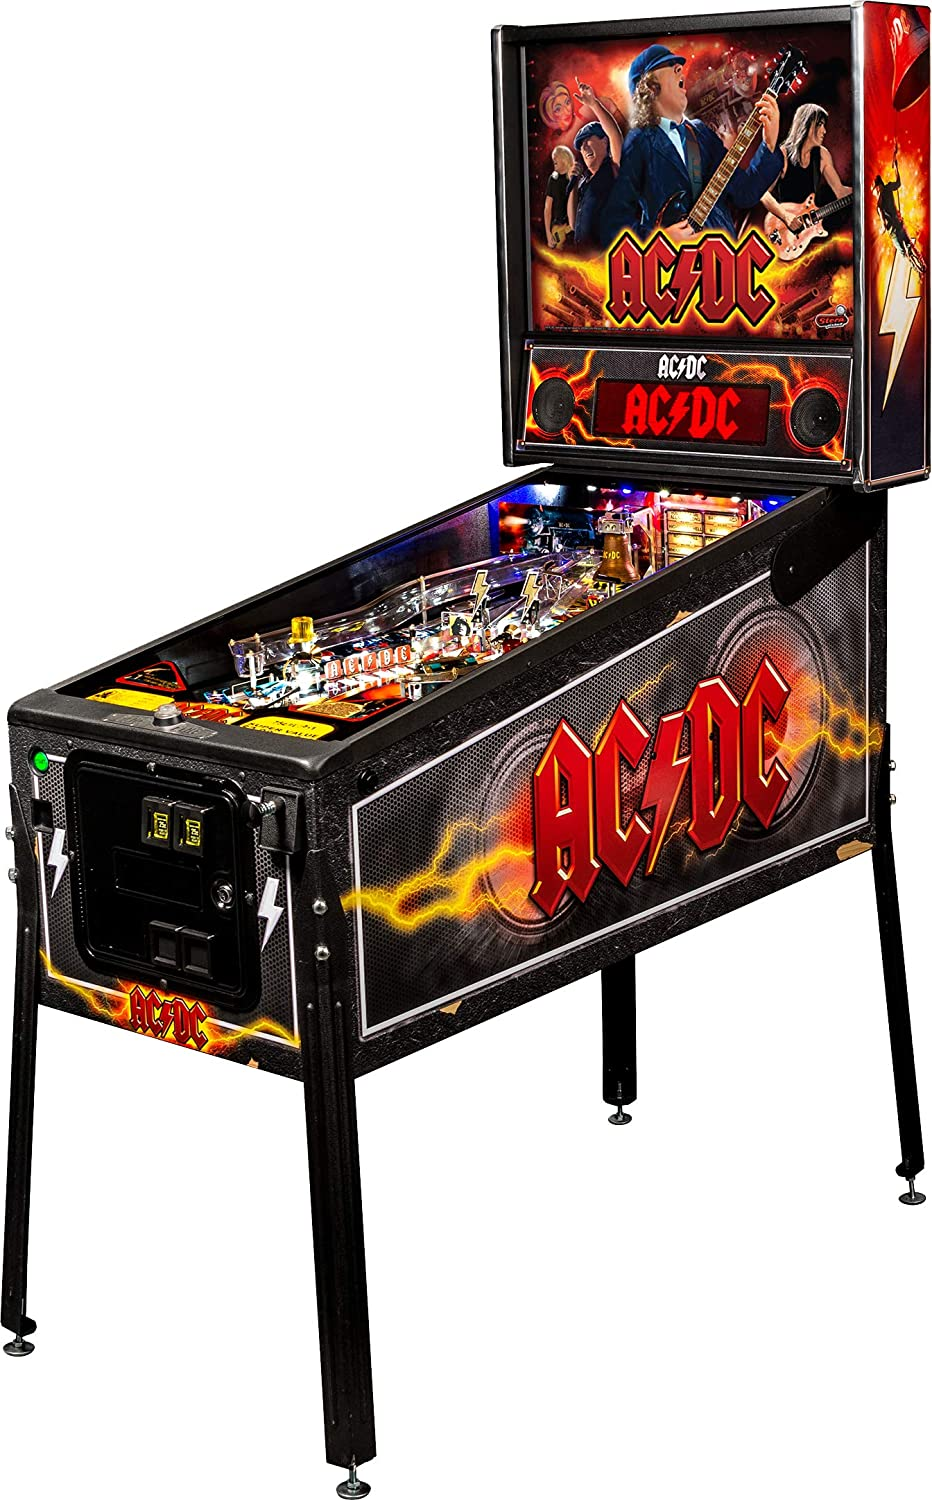 Amazon com stern pinball ac dc led pro arcade pinball machine sports outdoors